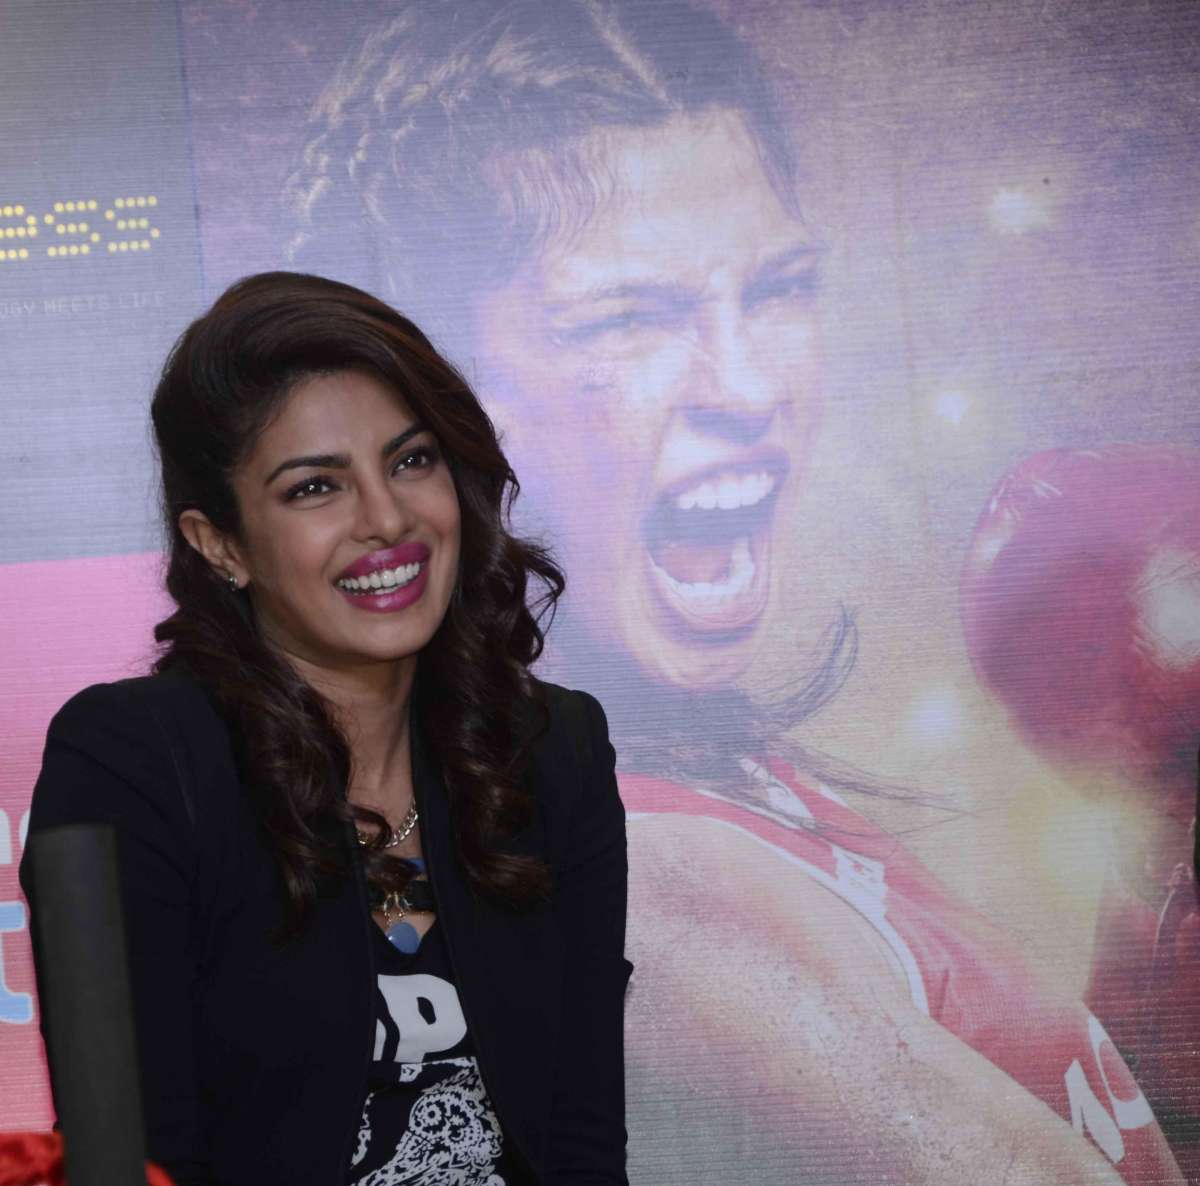 Actress Priyanka Chopra during a press conference to promote her film 'Mary Kom' in Mumbai on Sept 11, 2014. (Photo: Sandeep Mahankal/IANS)